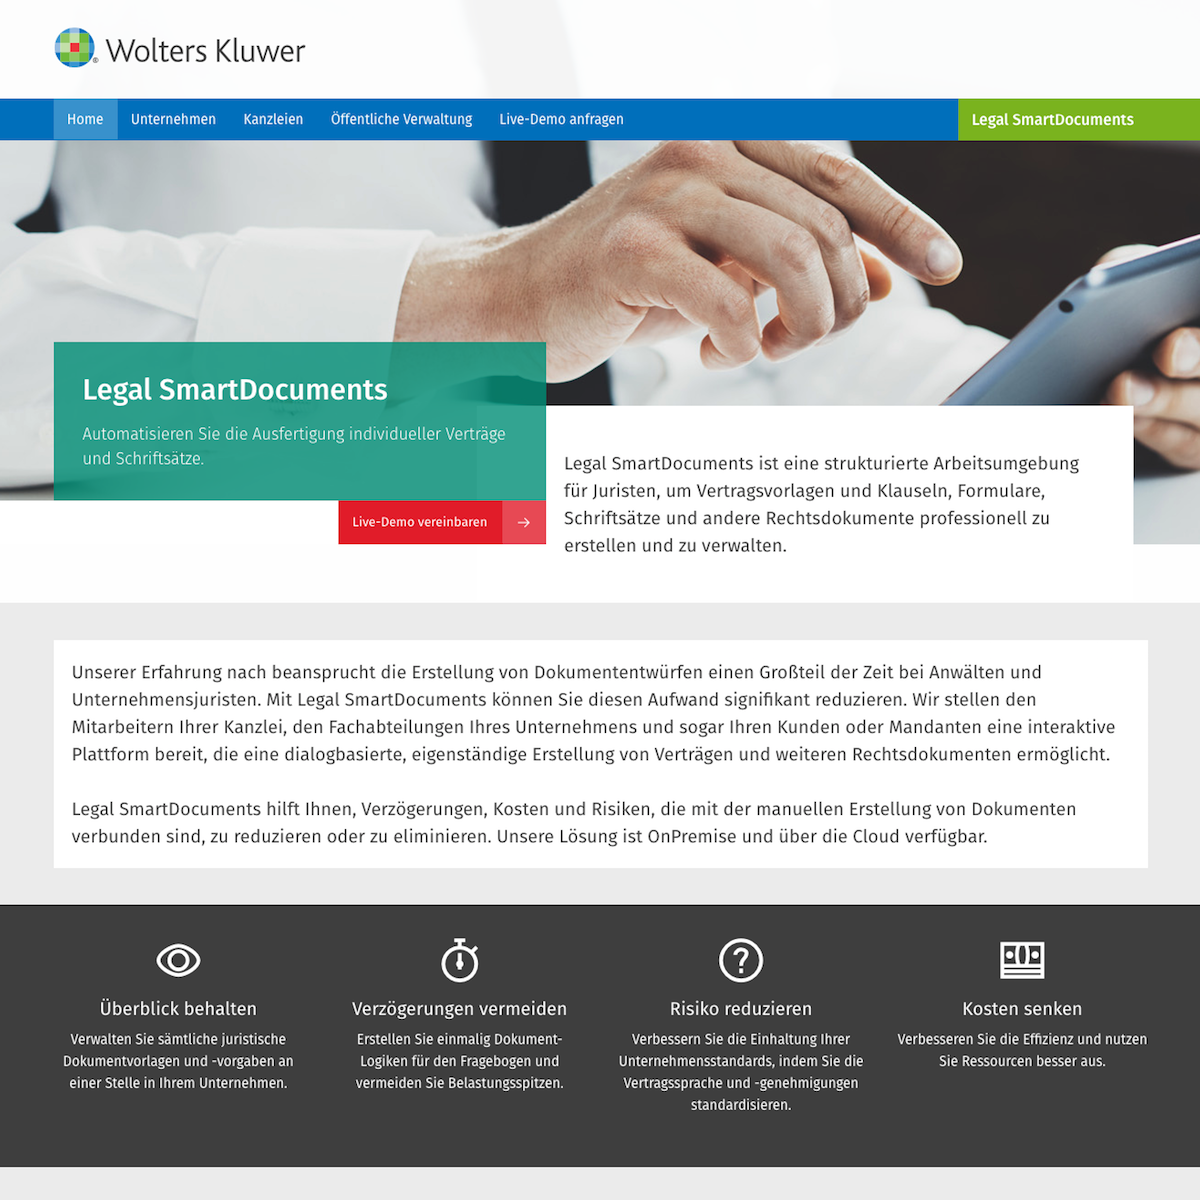 Legal SmartDocuments